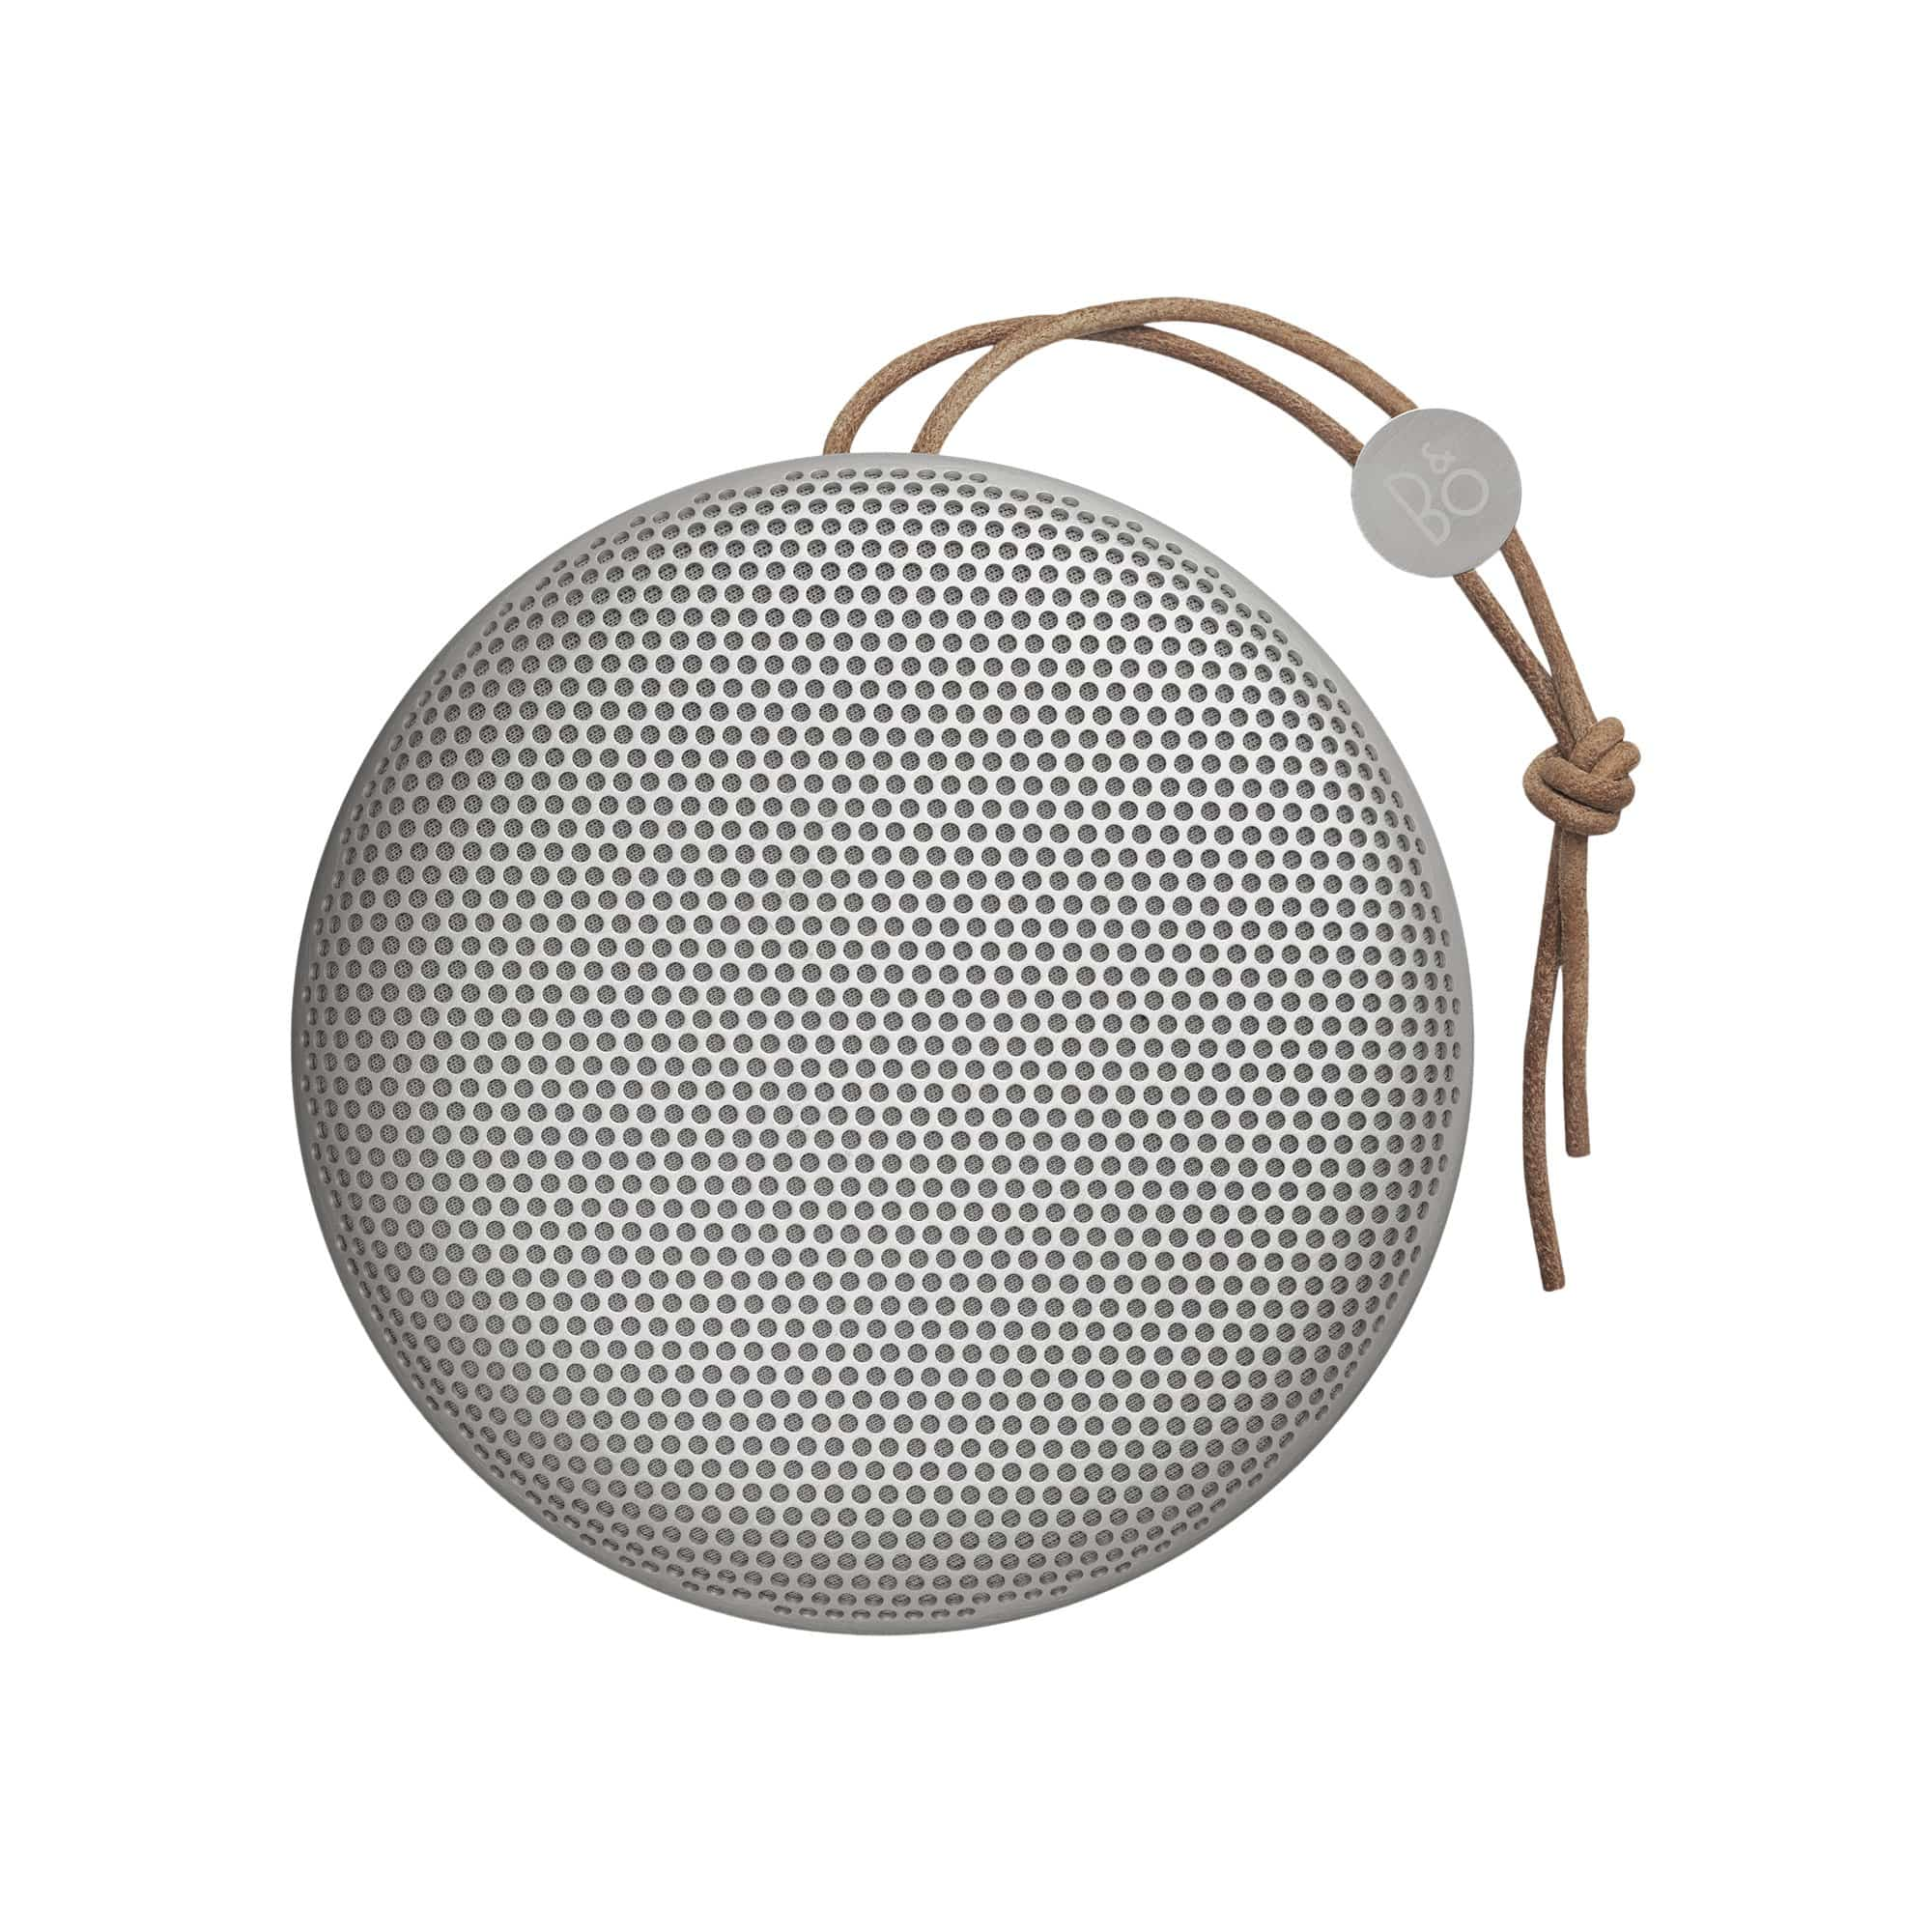 BANG & OLUFSEN Speakers Natural Brushed Beoplay A1 Portable Bluetooth Speaker